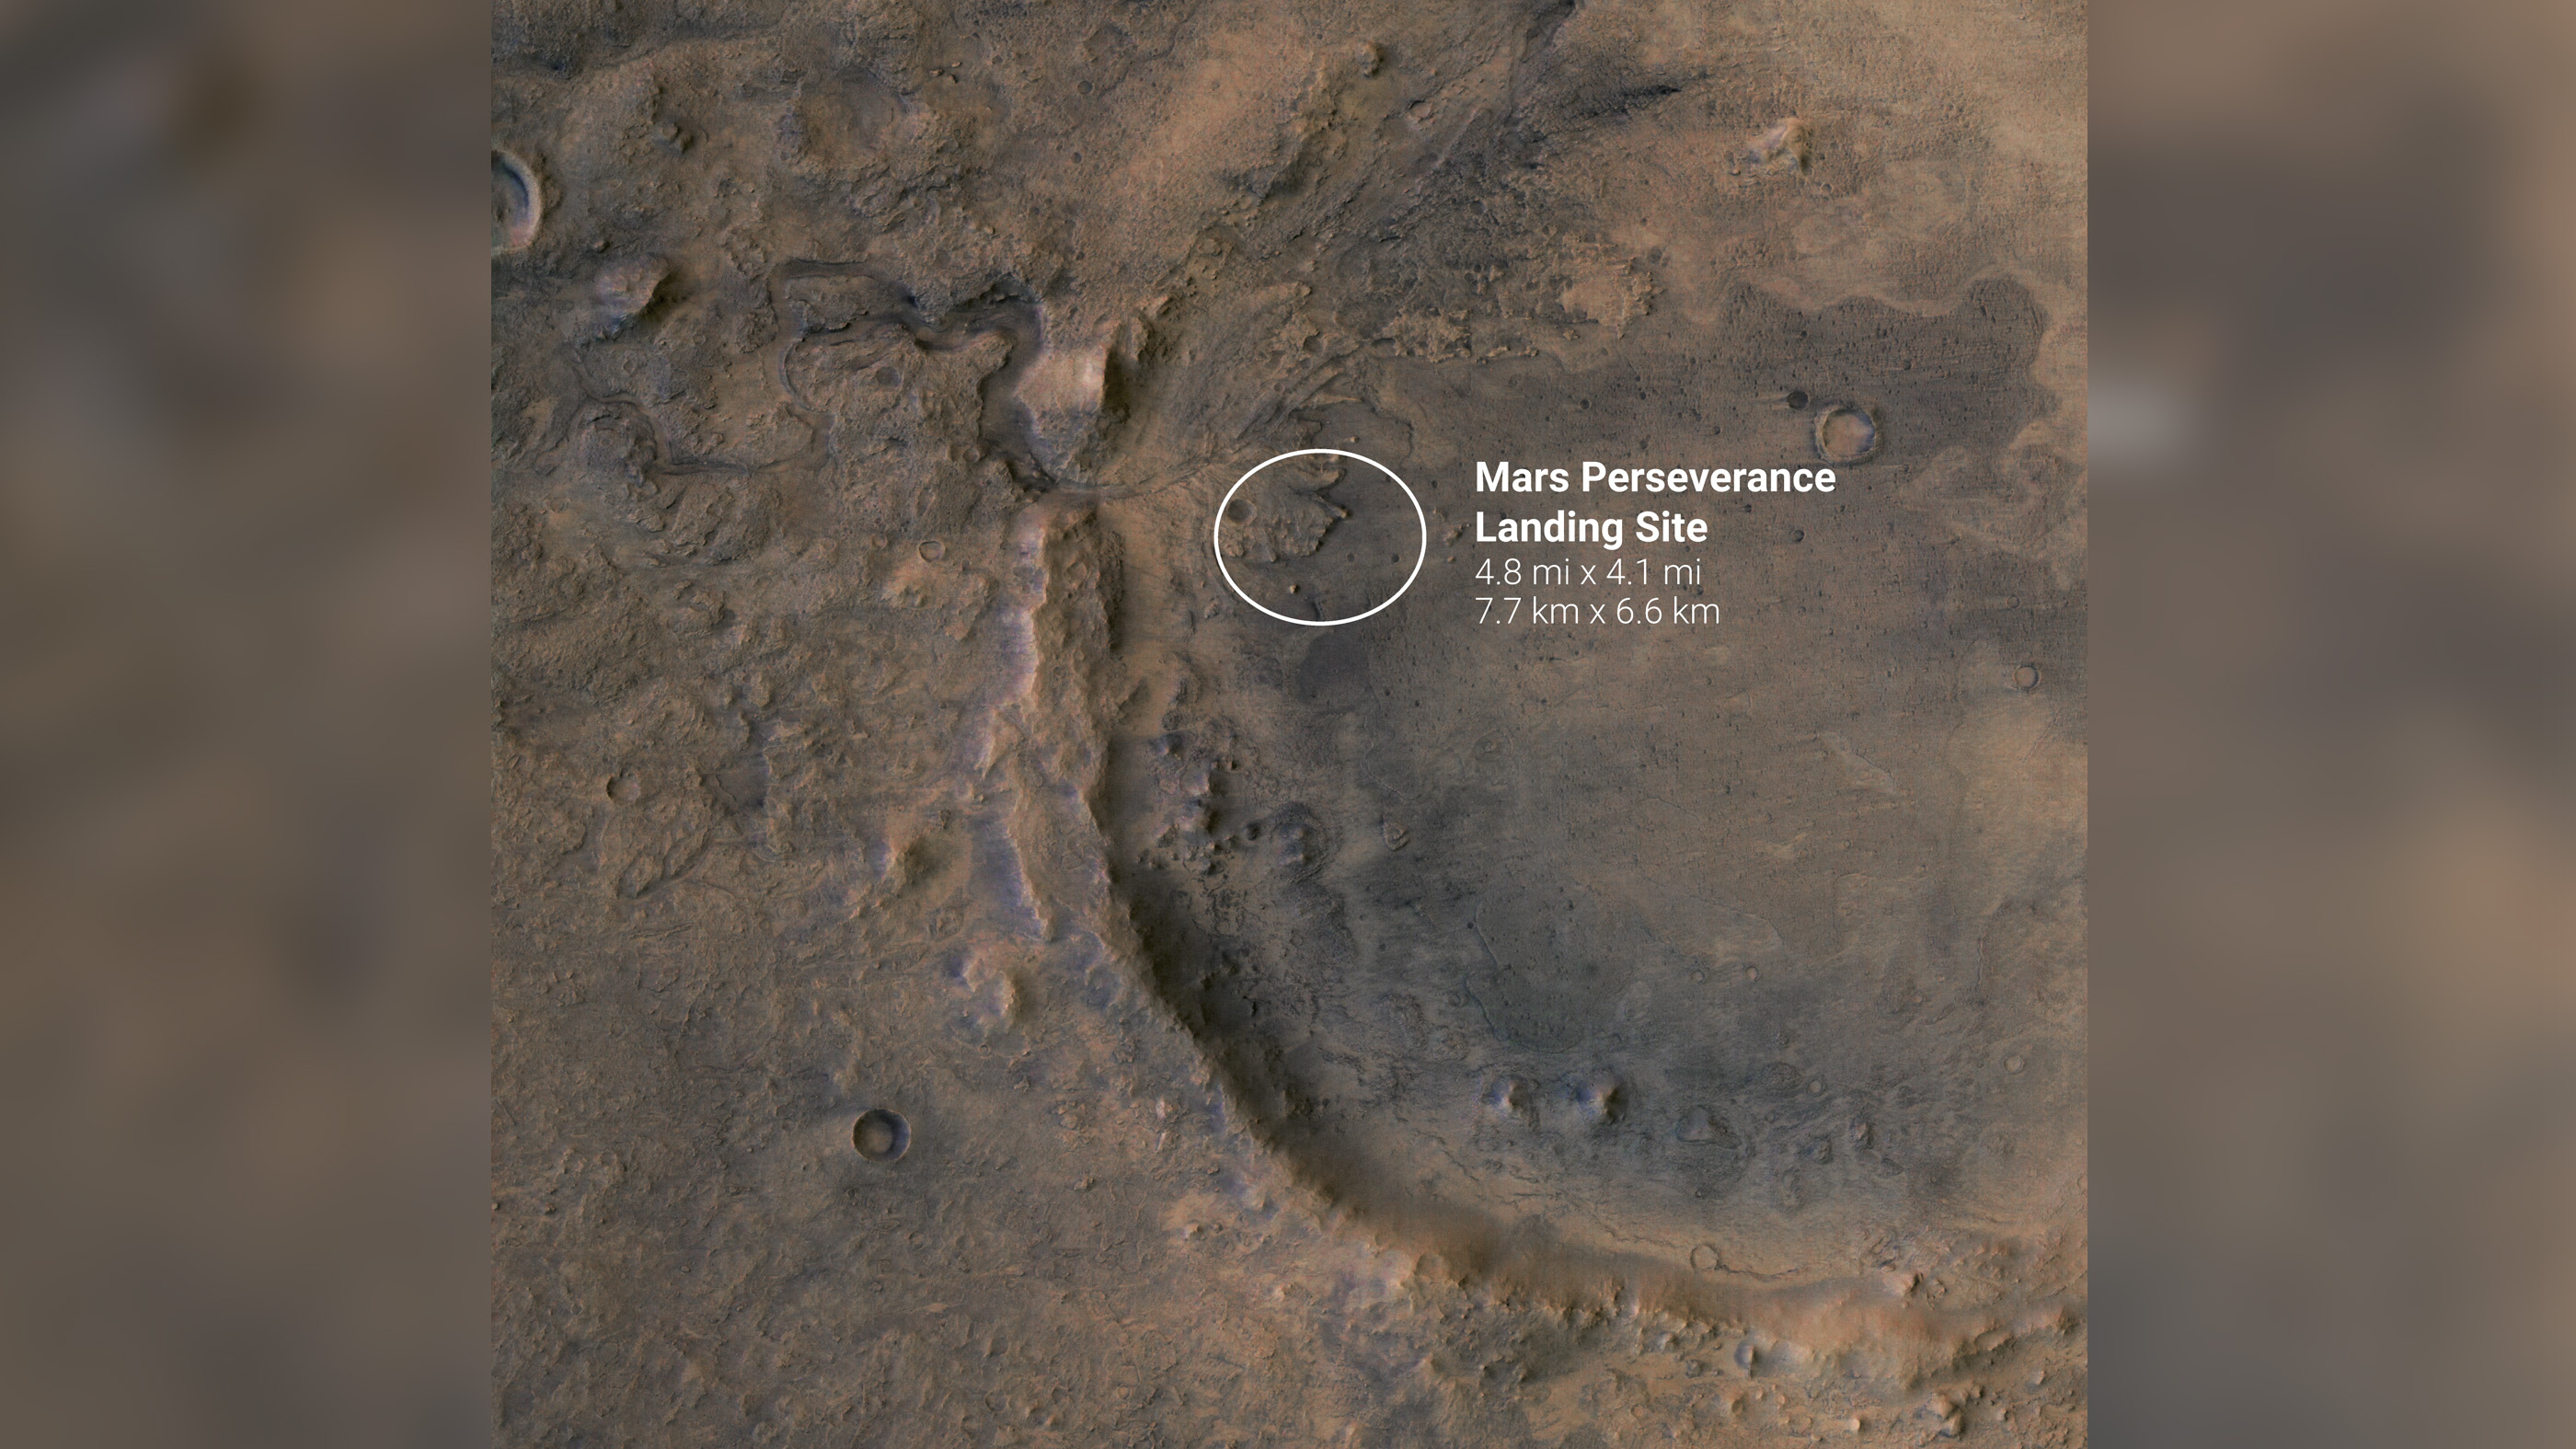 Images of Jezero crater, where Perseverance will touch down on Mars.